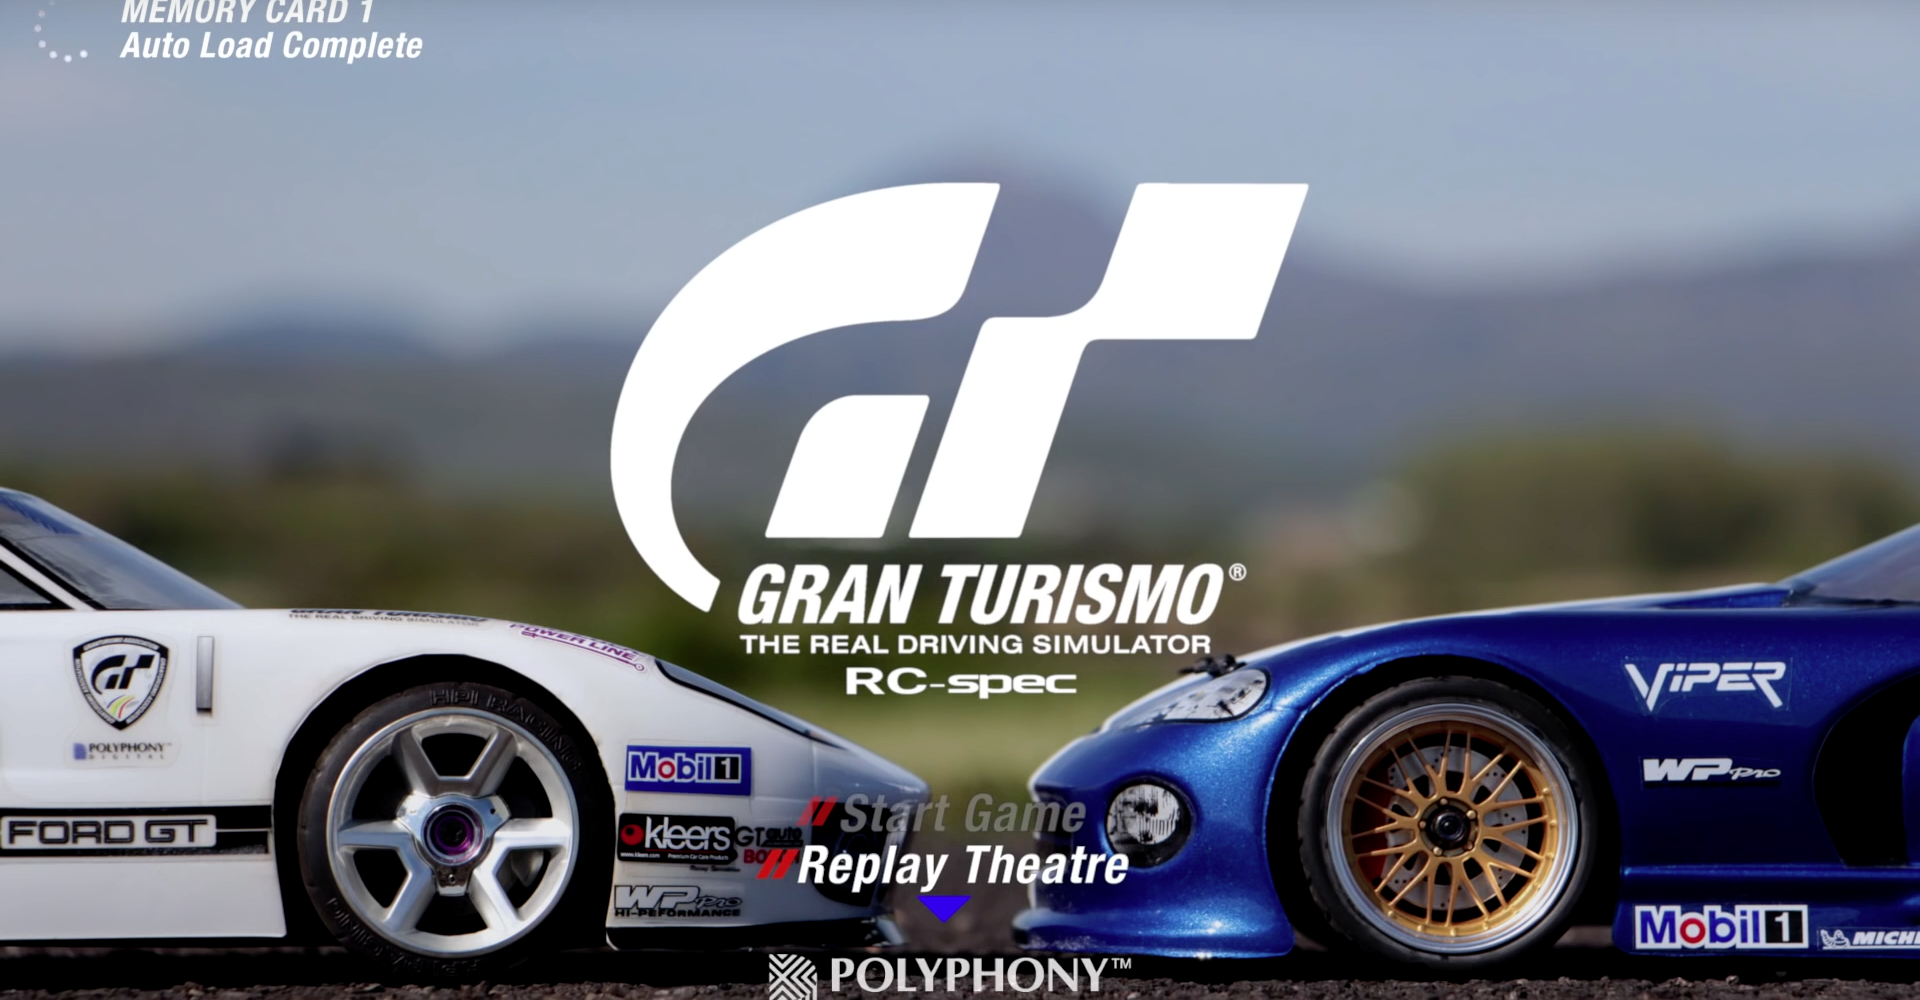 Film-Maker Recreates Gran Turismo Race Using Remote-Controlled Cars